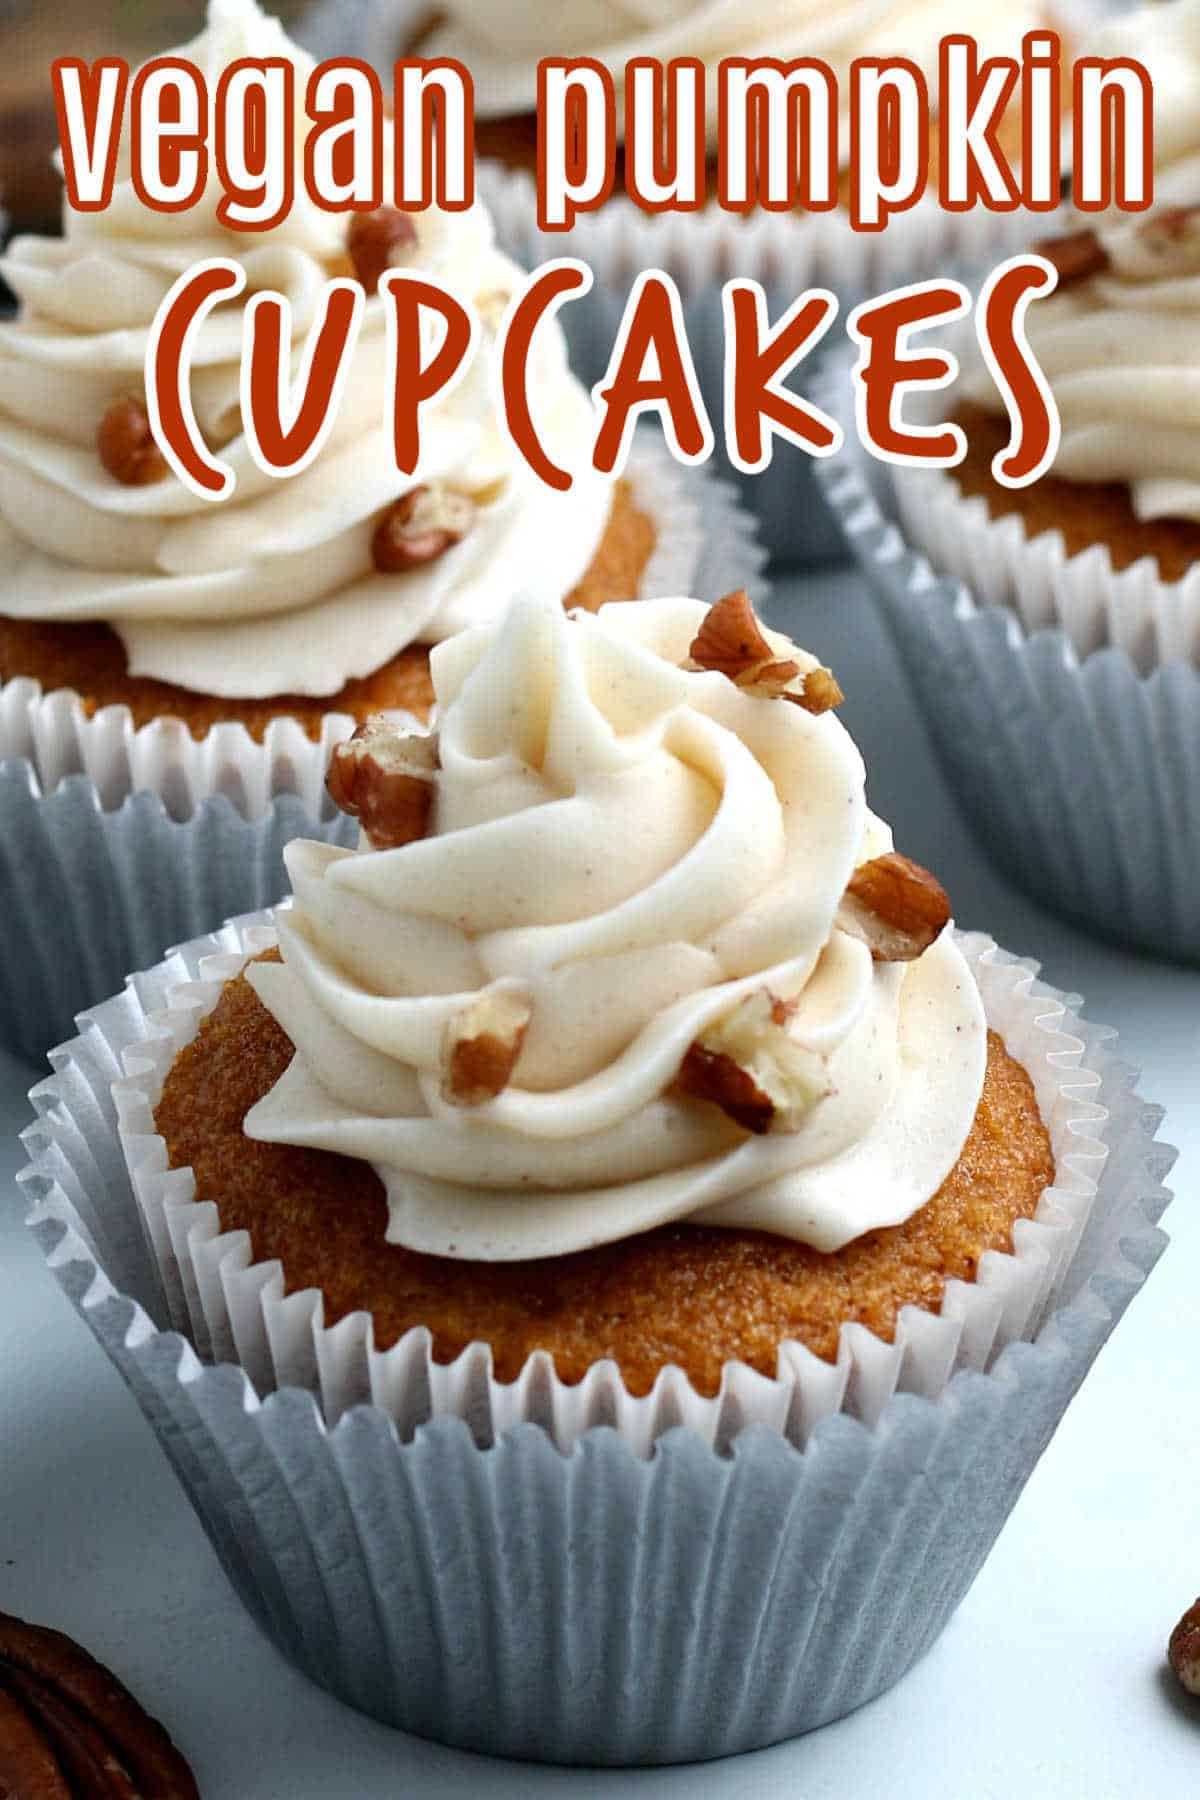 Close up of a vegan pumpkin cupcake with text above in white and orange.